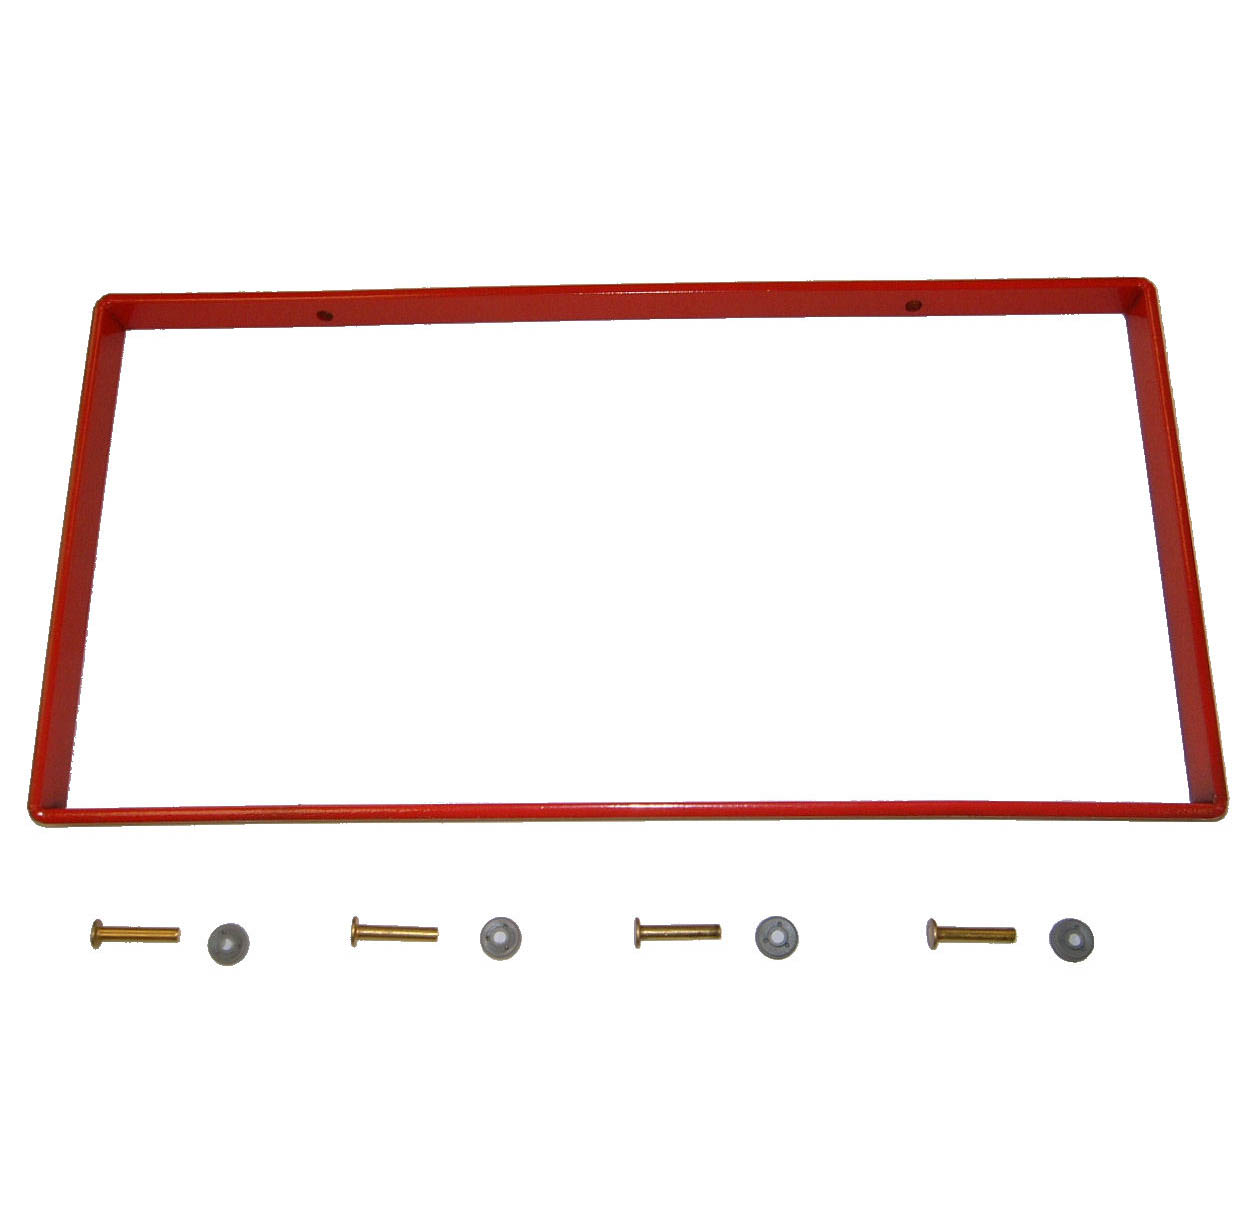 K6 LARGE STEEL GLAZING FRAME KIT X 1